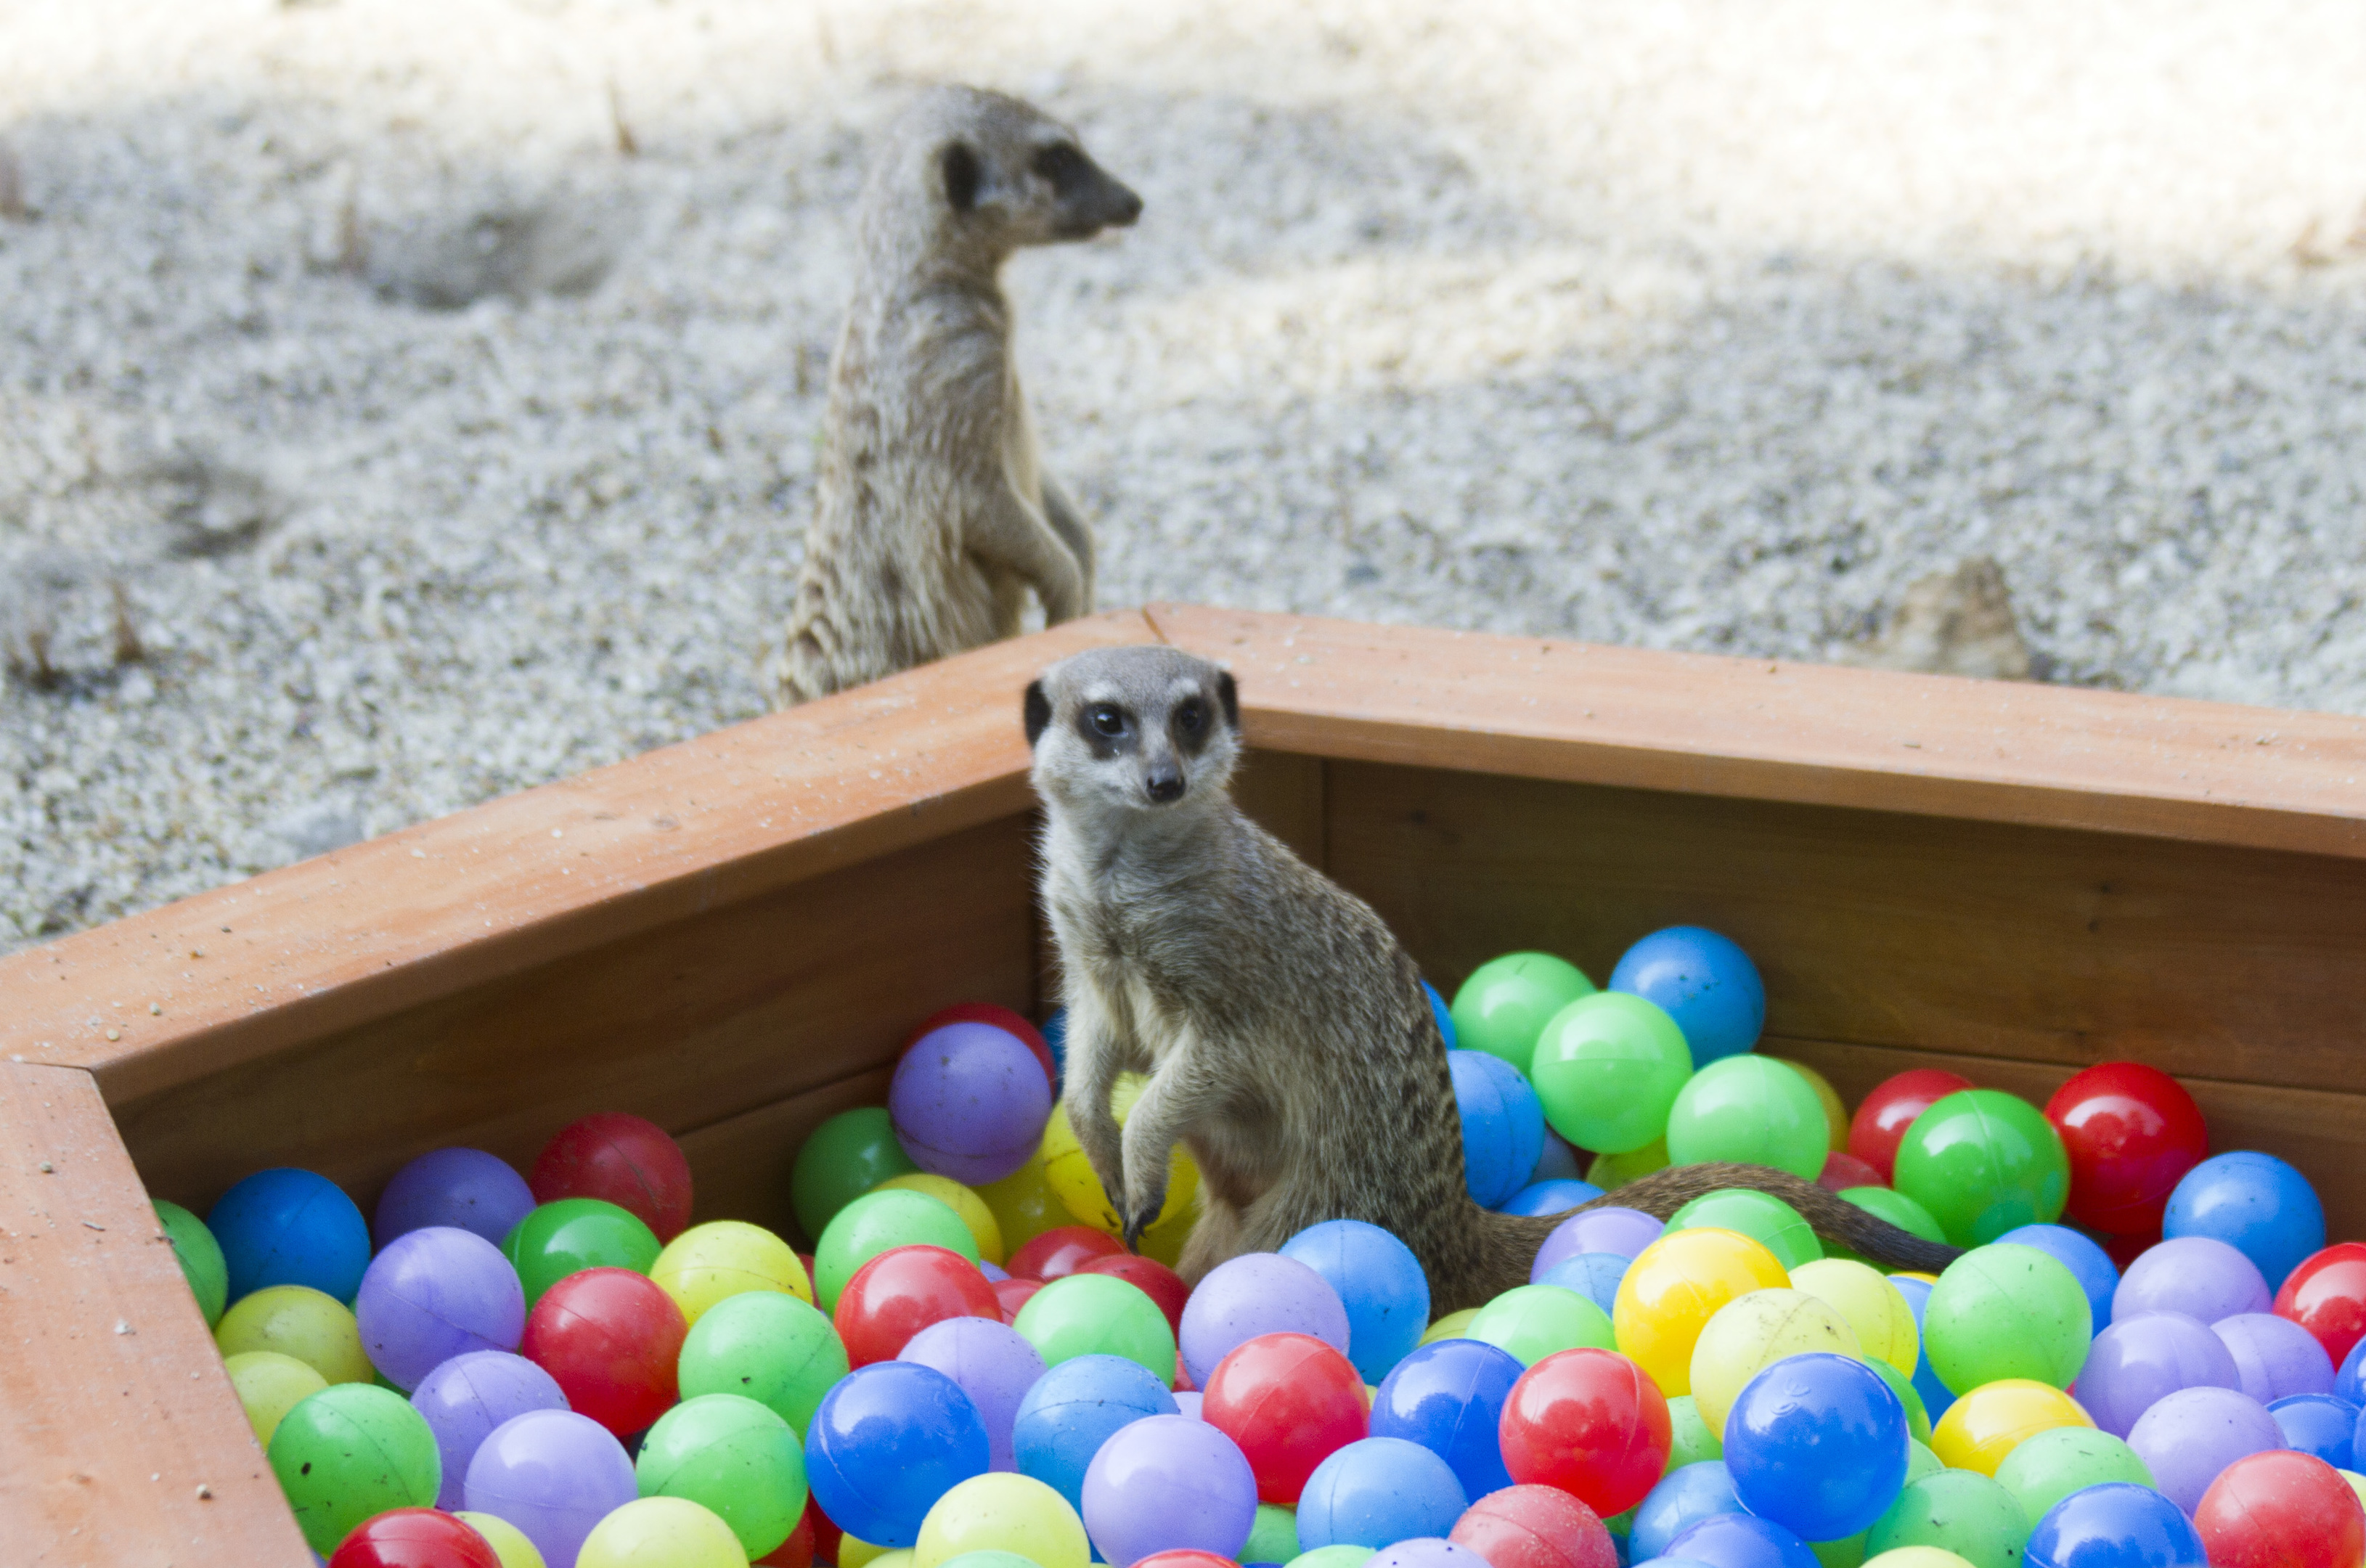 Meerkats diving into new toy. Video and pic credit RZSS/Rosie Collins